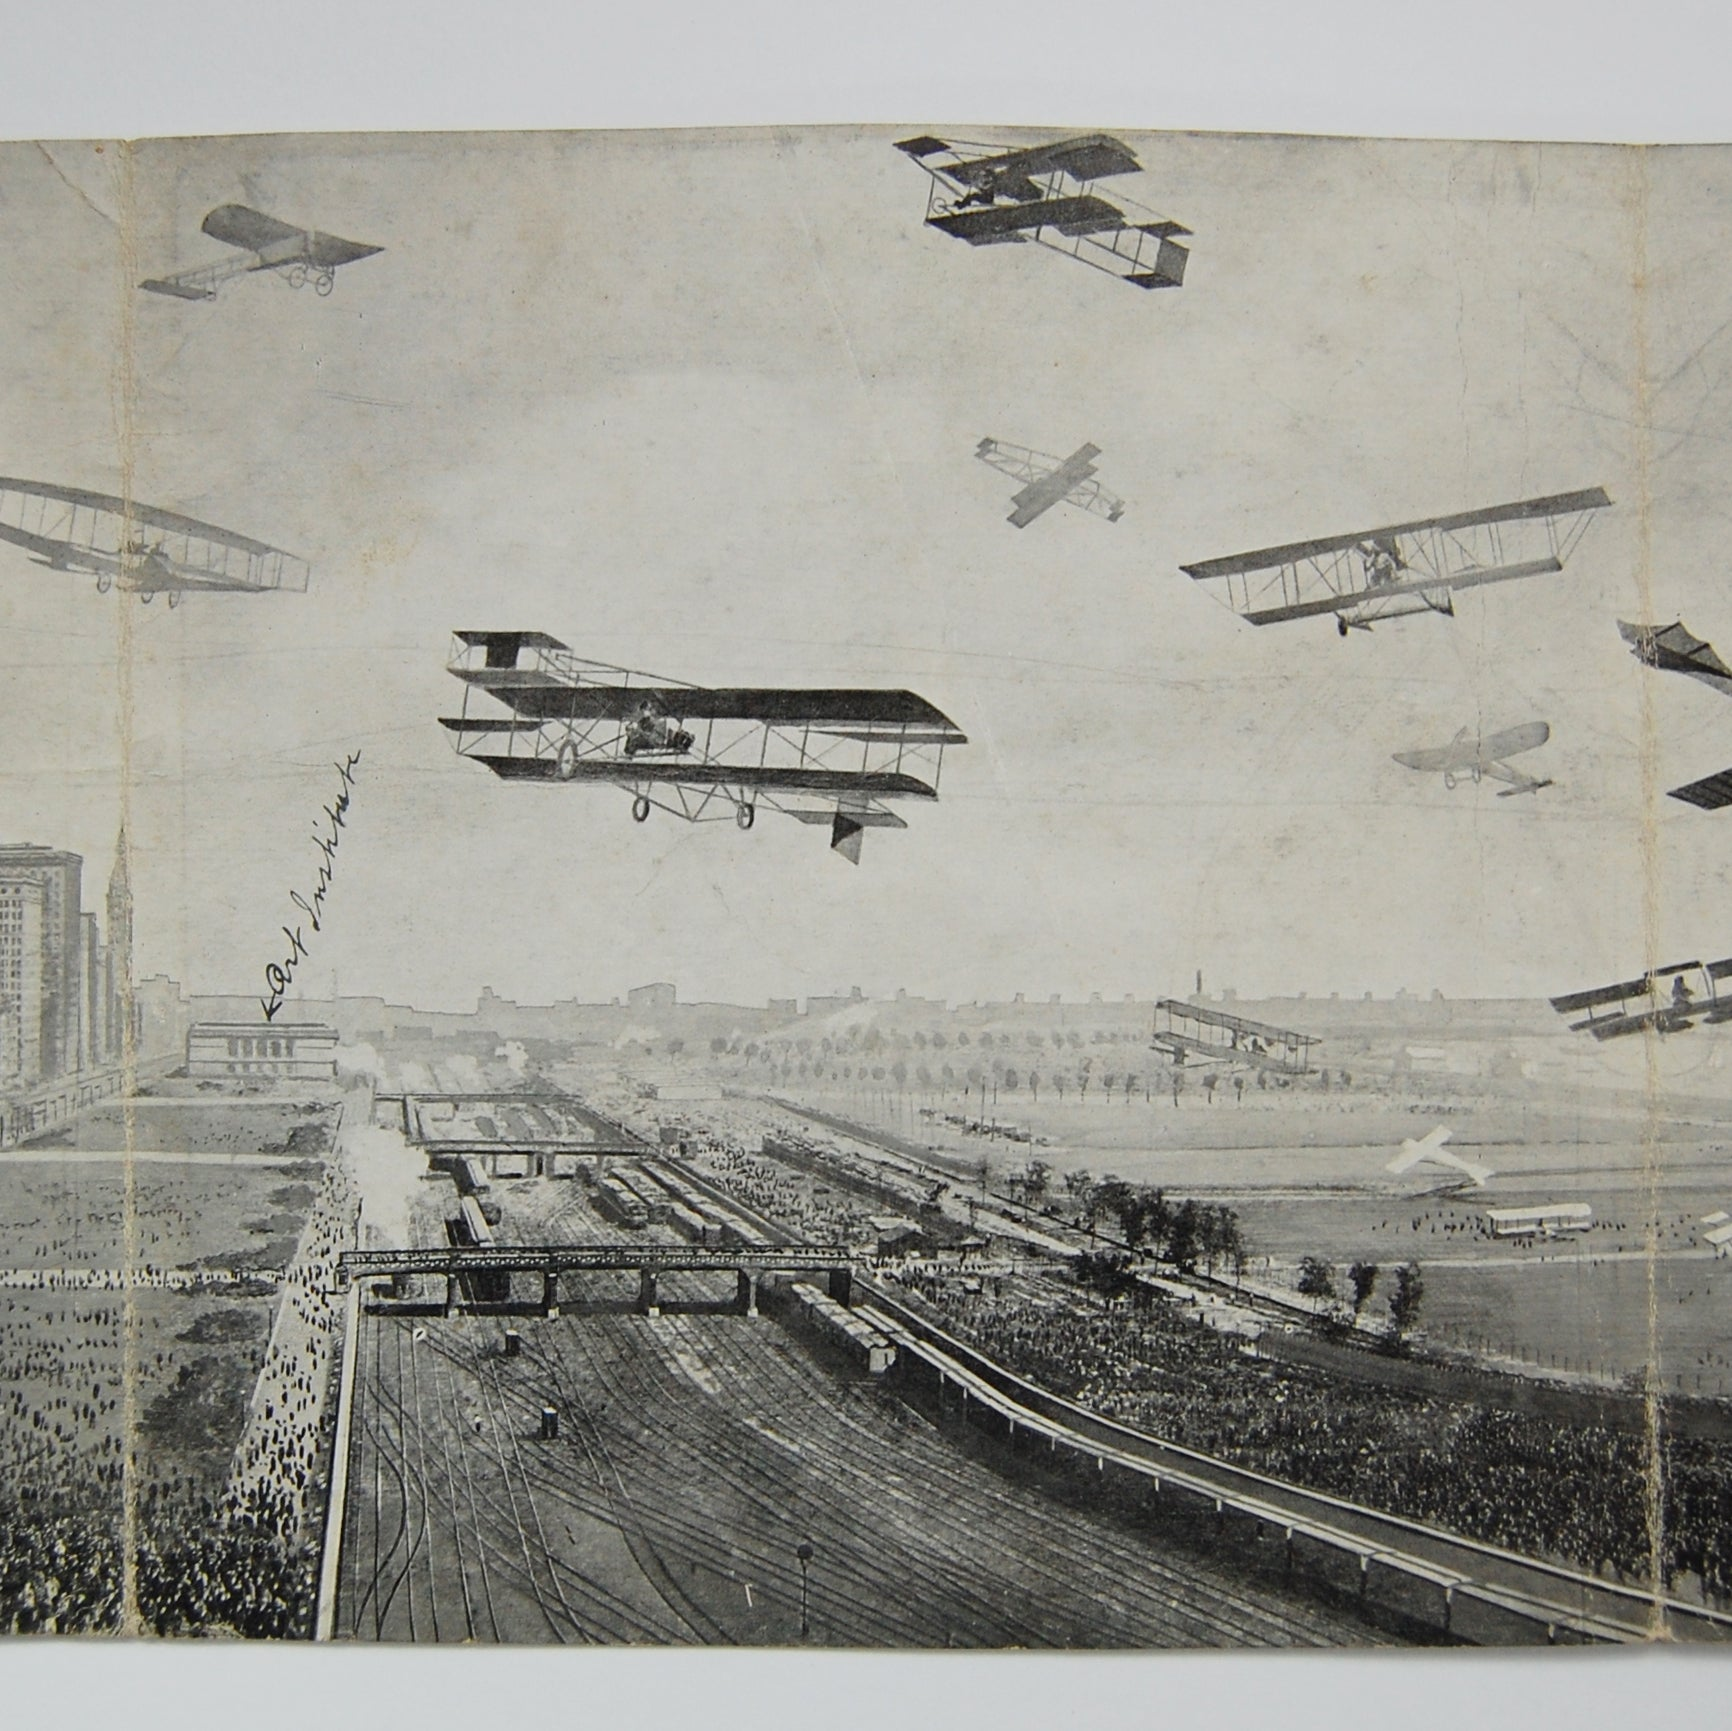 Max Rigo Selling Company | International Aviation Meet. Grant Park Chicago. Panoramic Post Card.